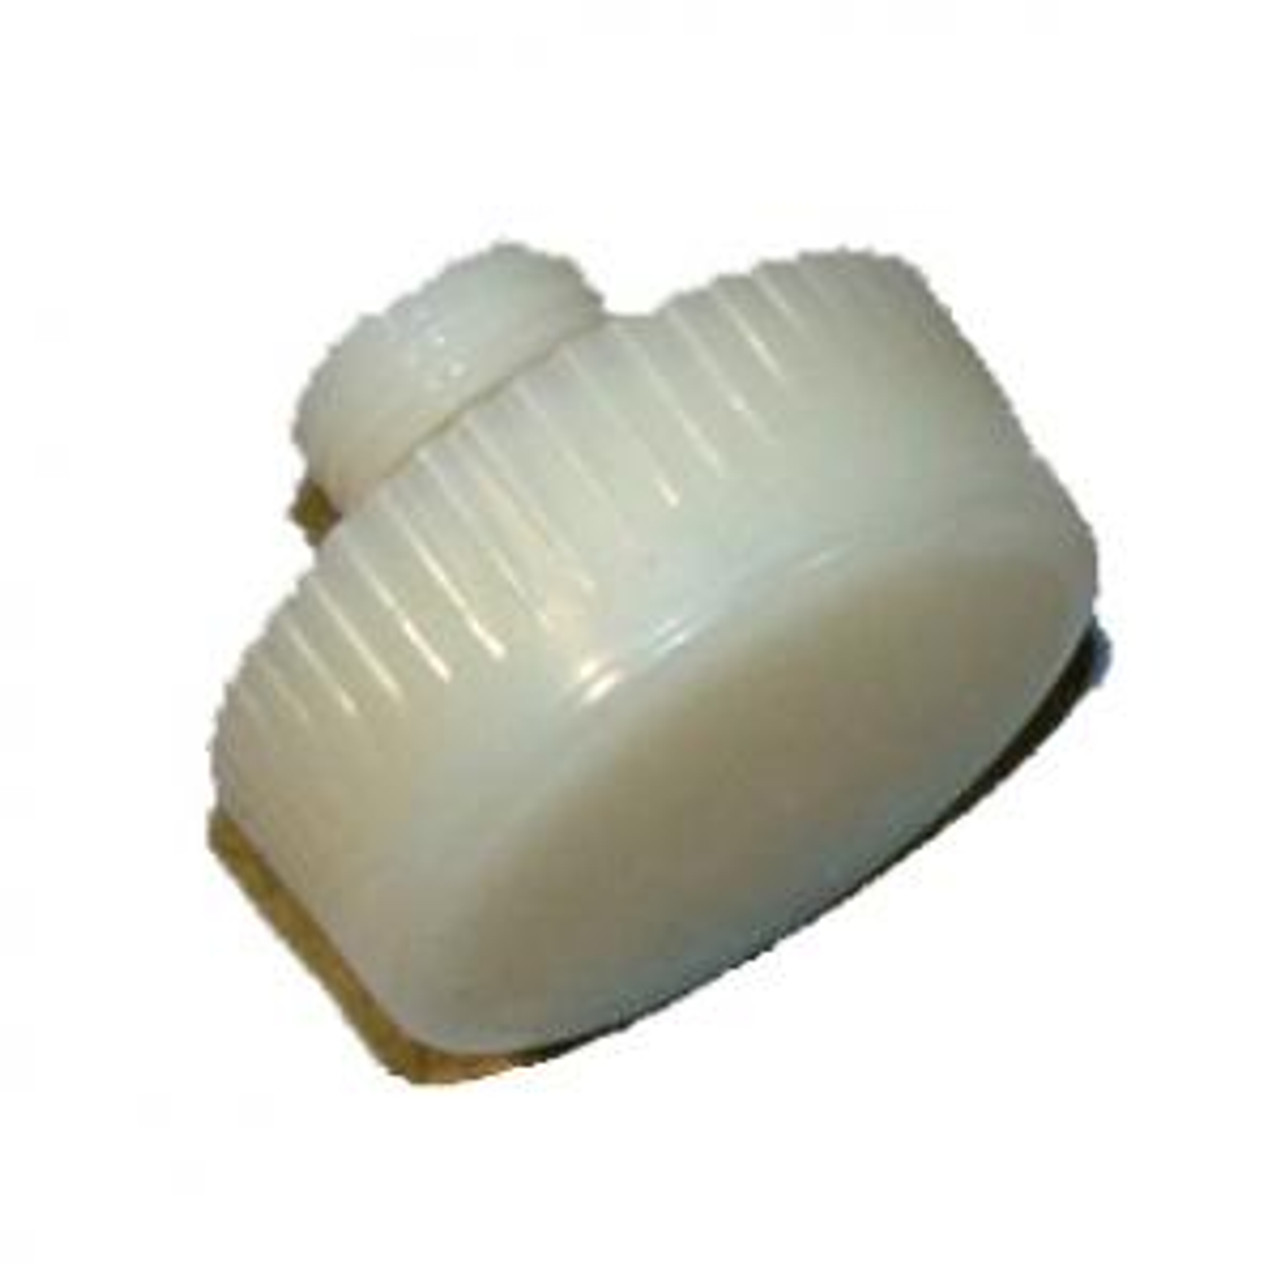 Thor 76-710NF 1 1/4 inch Hard White Nylon replacement tip for DB125 and NT125 hammers. One tip.